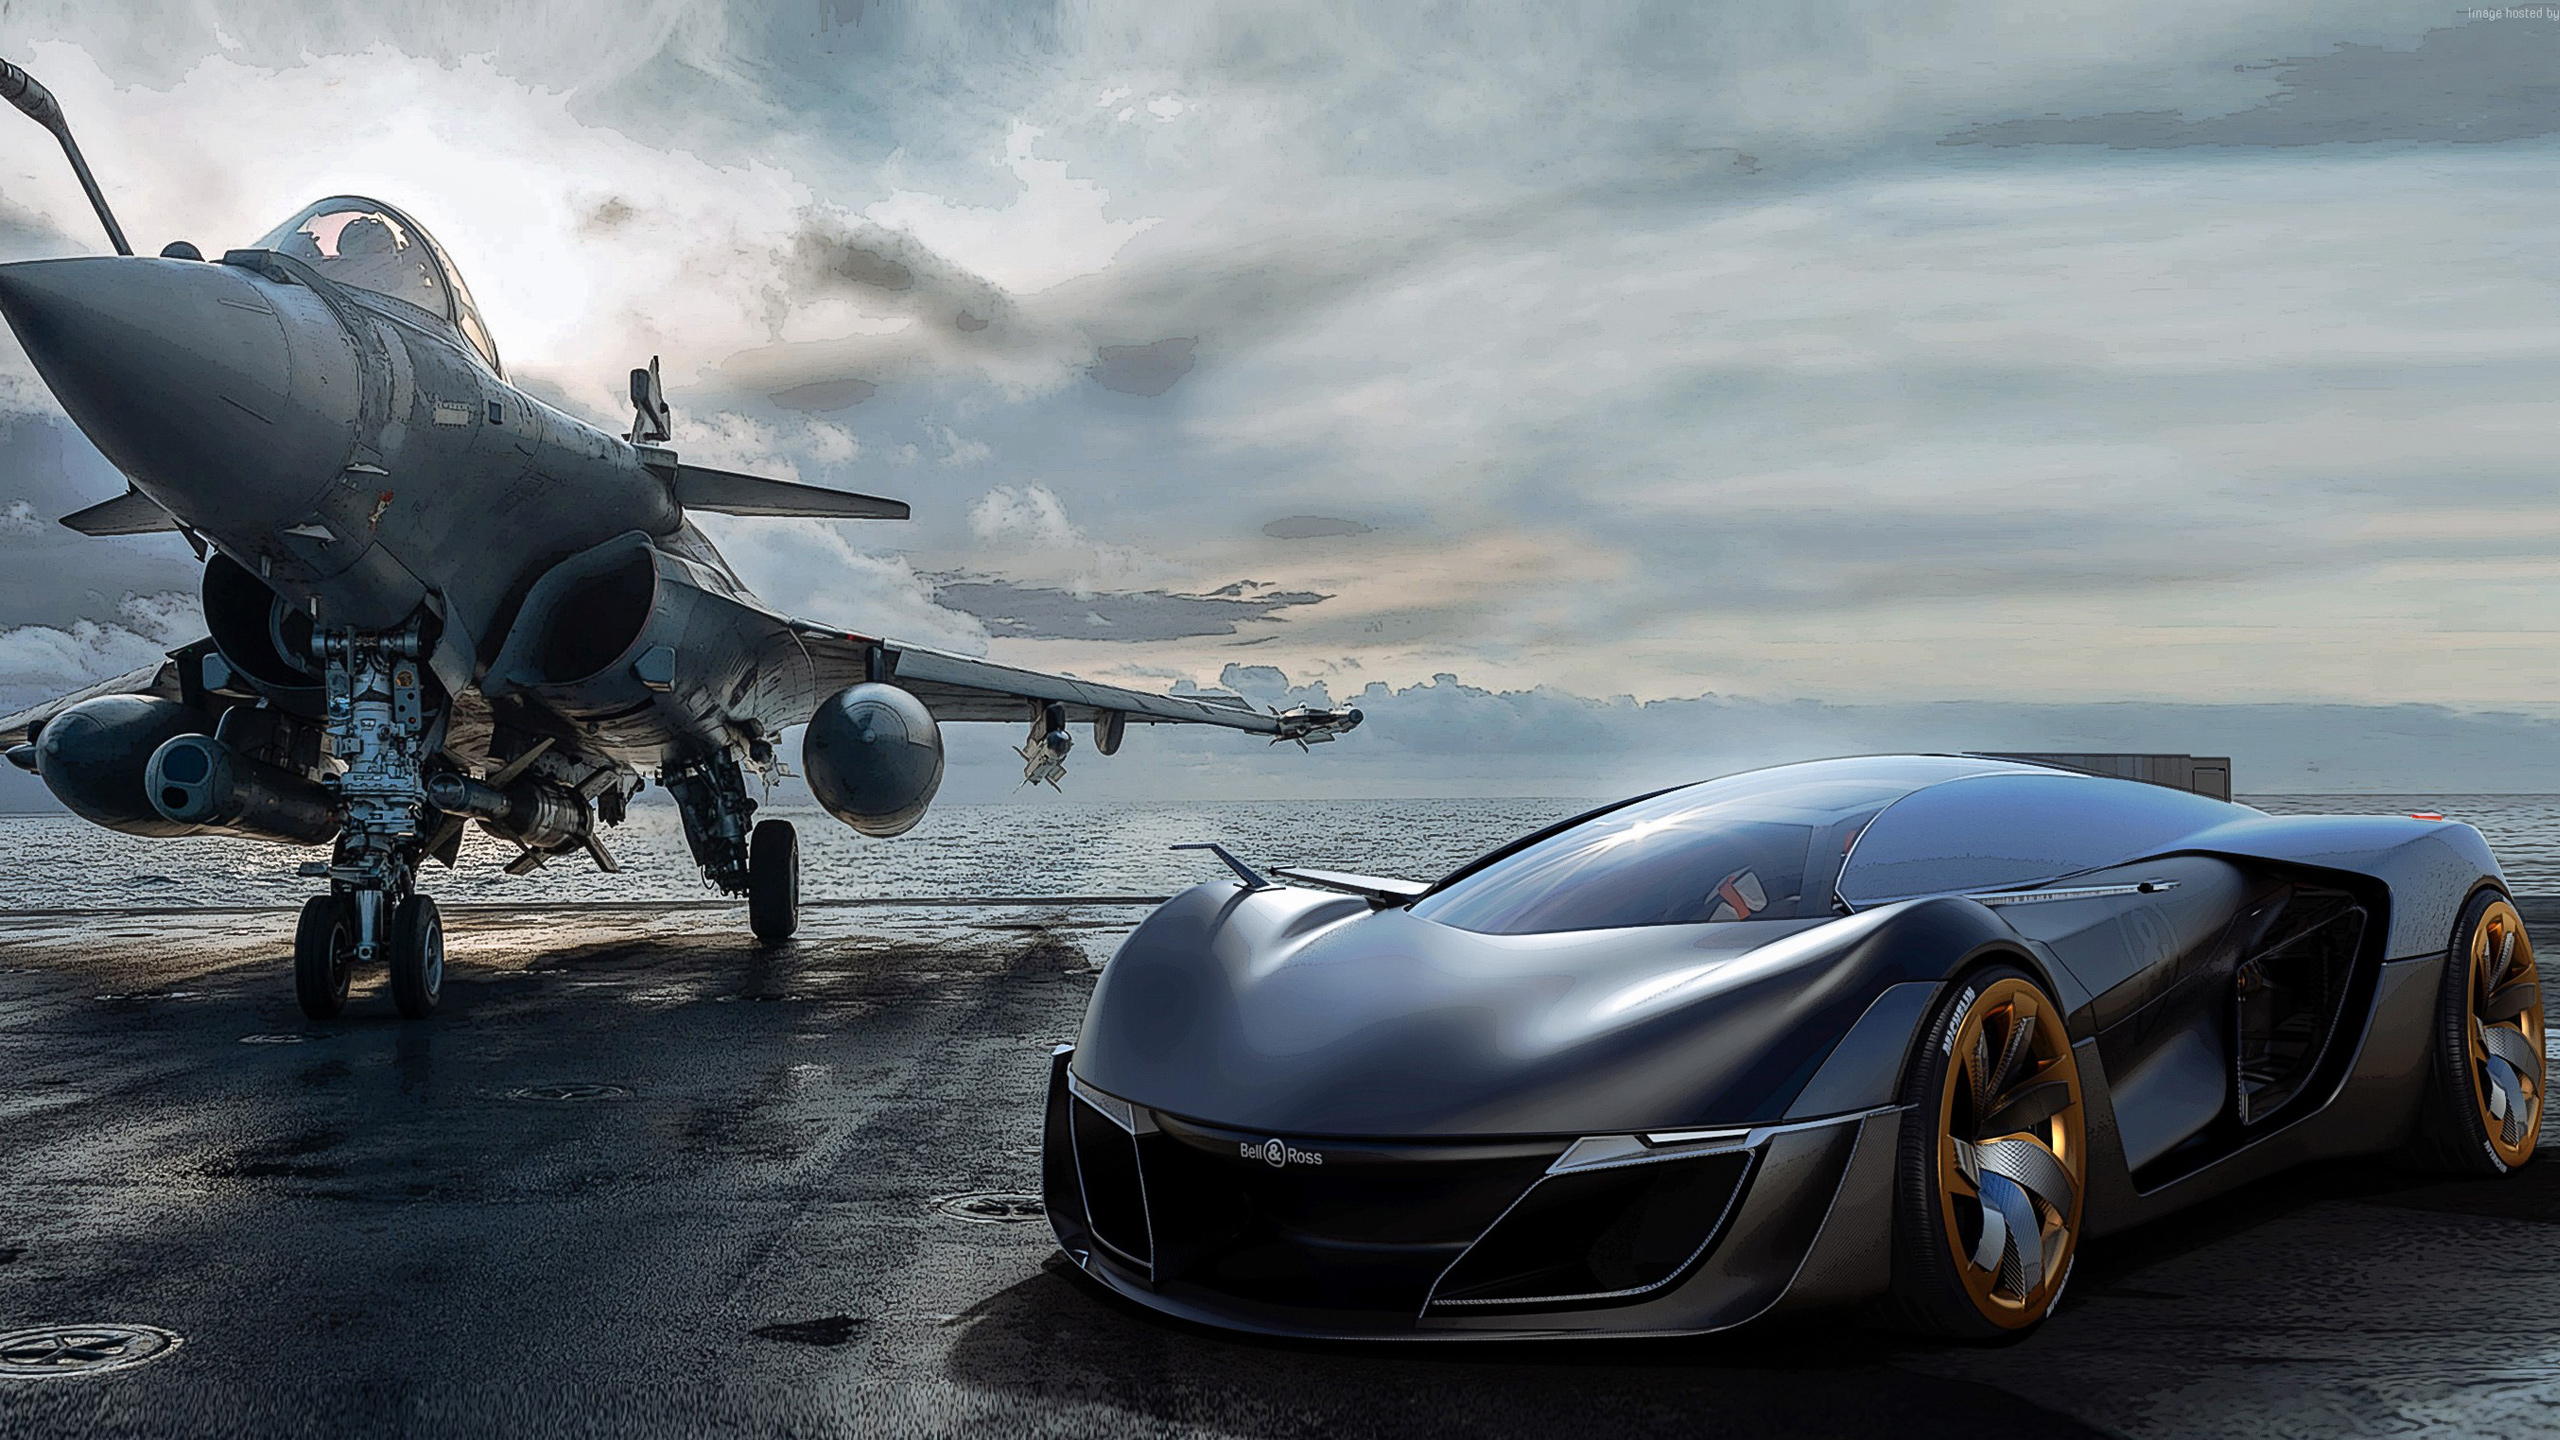 Bell & Ross Aero GT Concept Car Wallpaper | HD Car ...